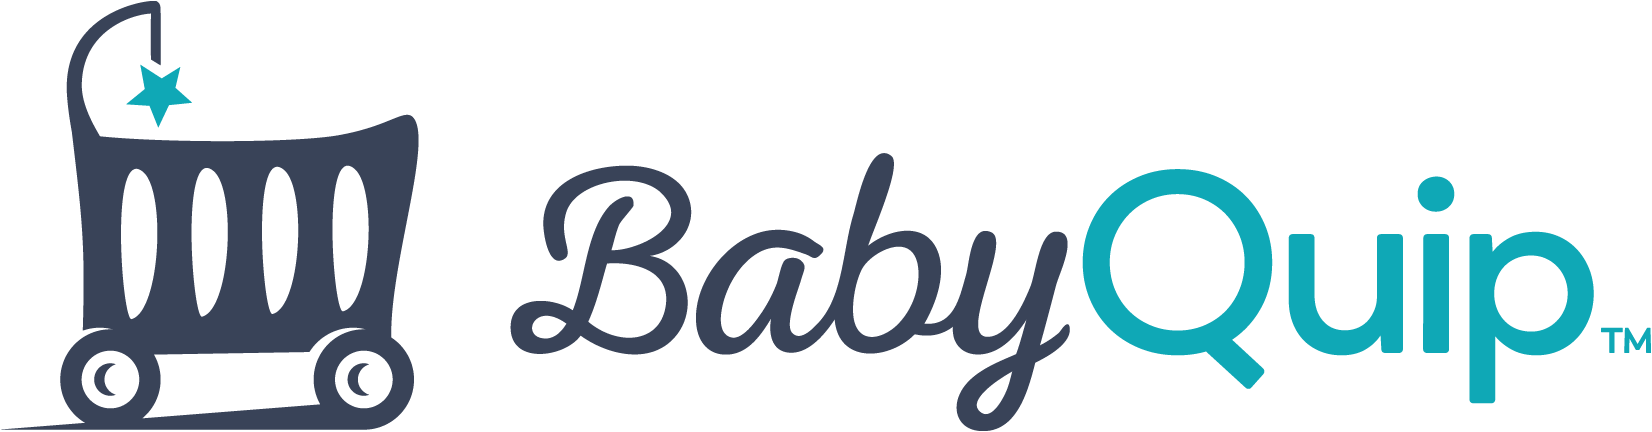 BabyQuip equipment rentals throughout the U.S. and Canada